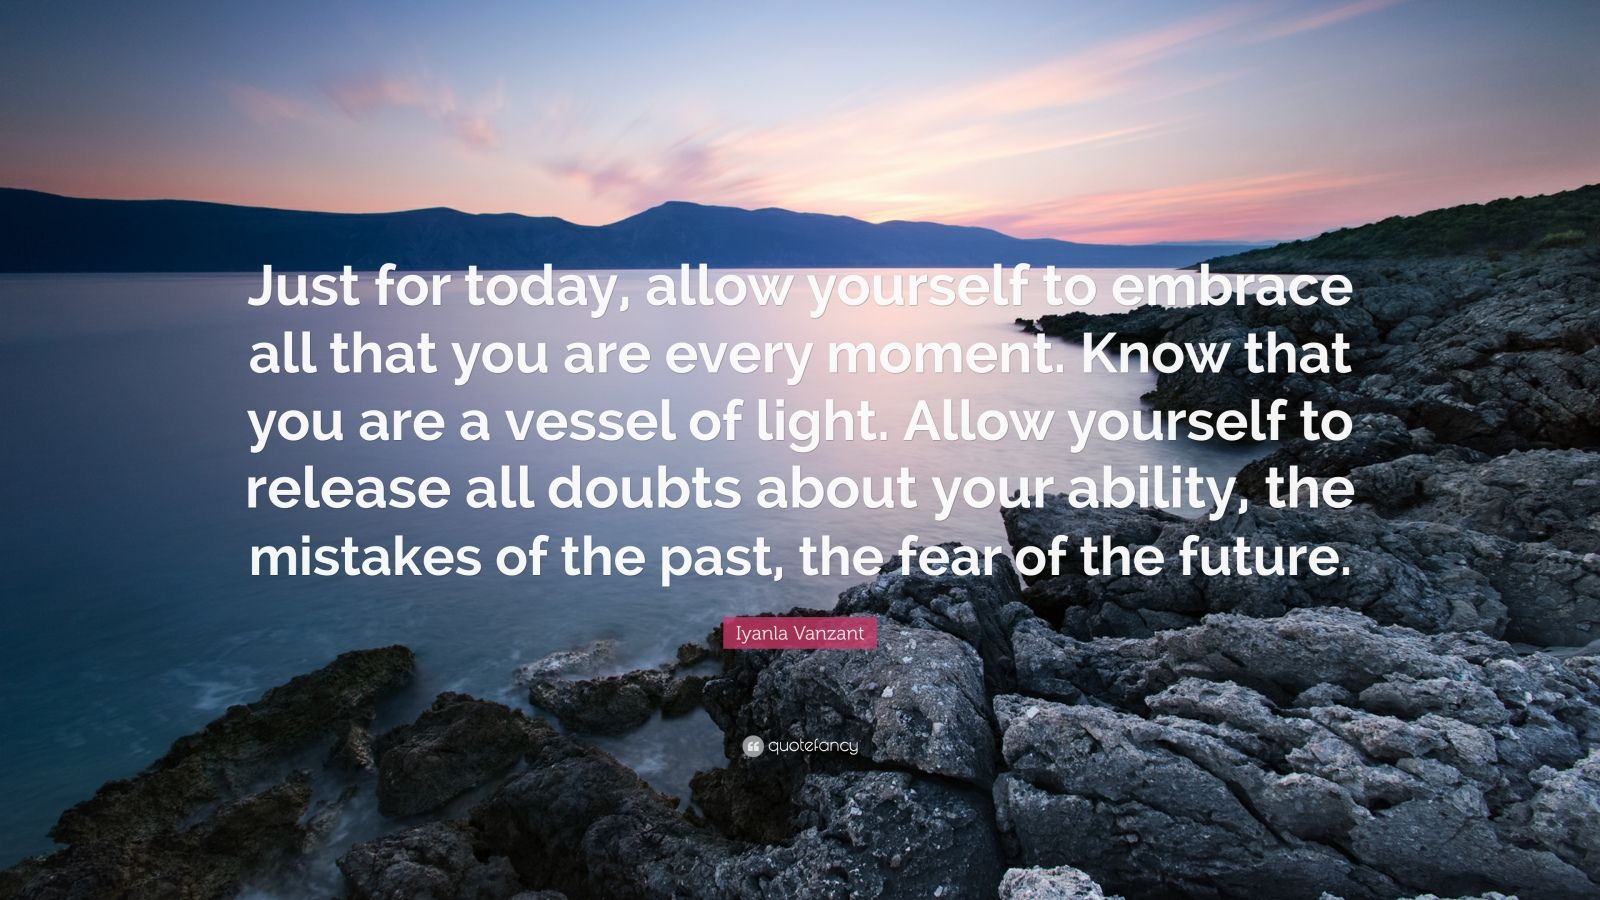 "Iyanla Vanzant Quote: ""Just for today, allow yourself to embrace all that you are every moment. Know that you are a vessel of light. Allow yourself to release all doubts about your ability, the mistakes of the past, the fear of the future."""